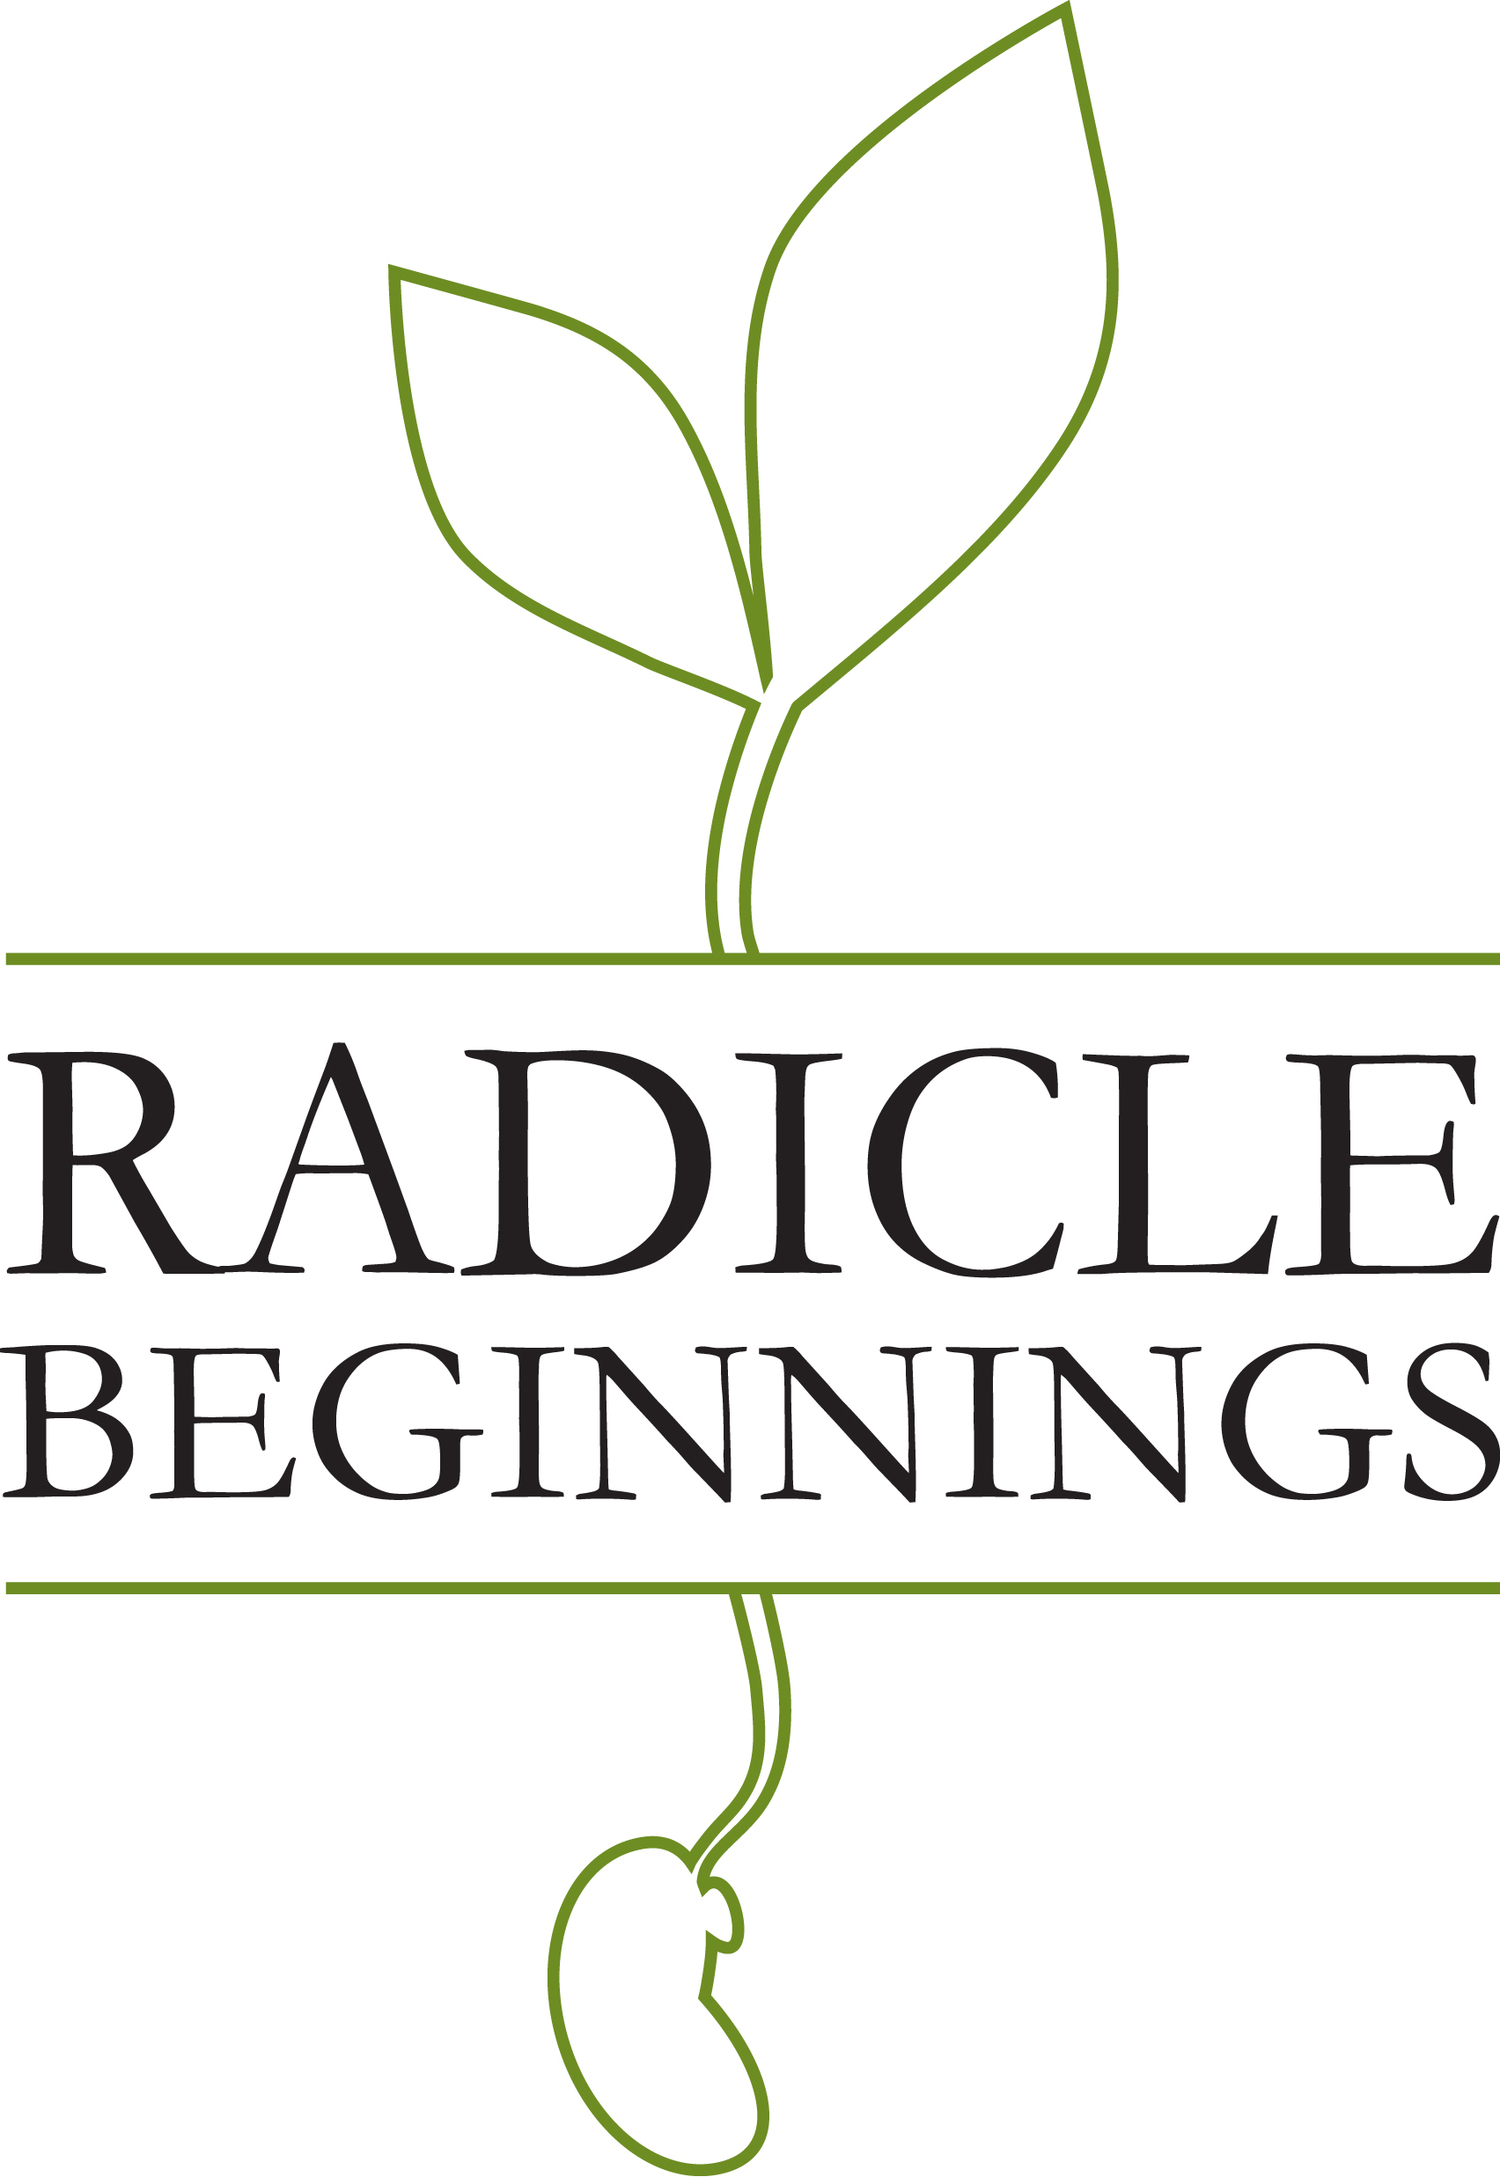 Radicle Beginnings